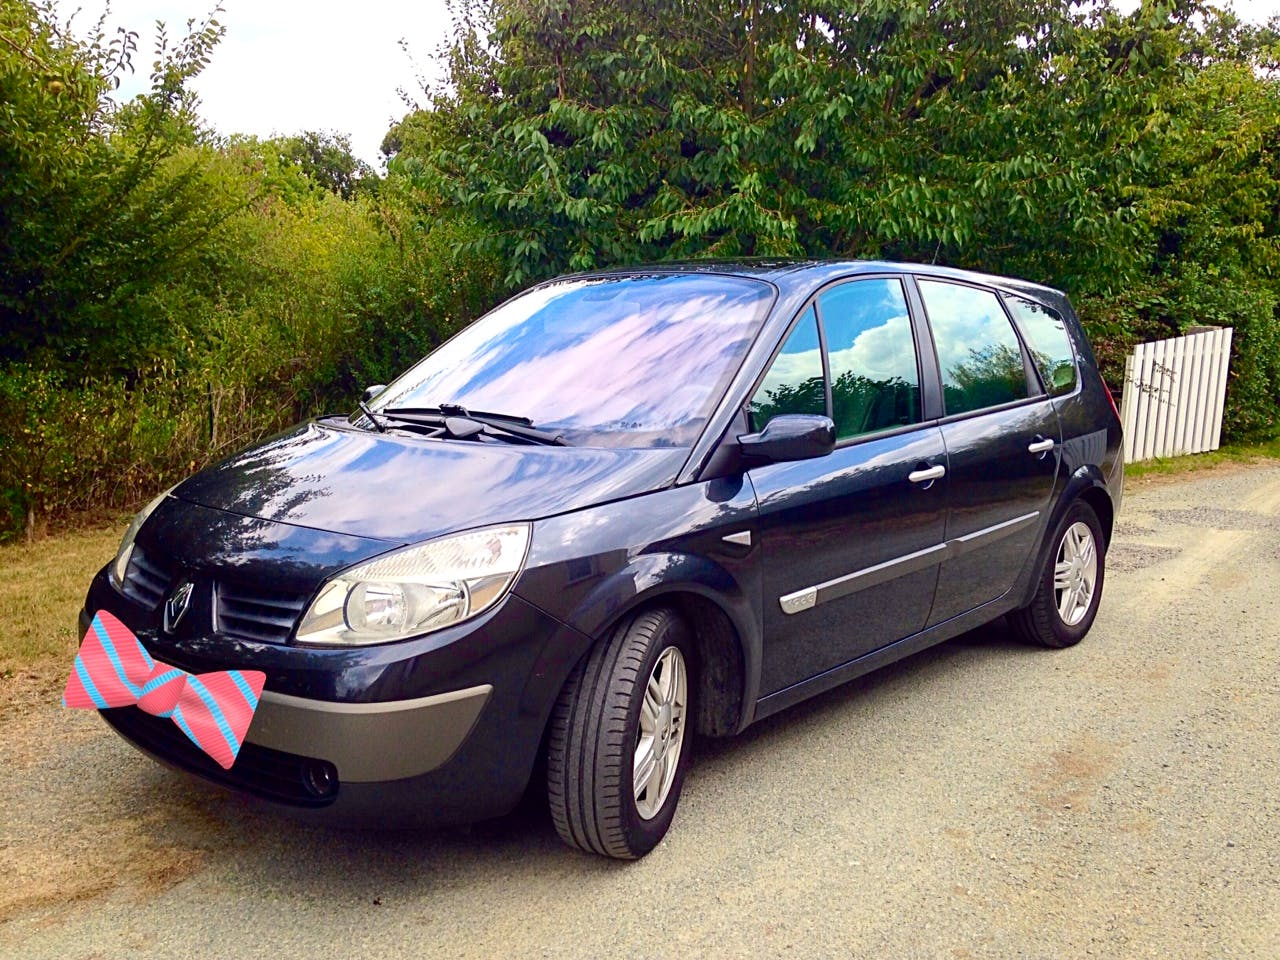 Renault Grand scenic luxe, 2005, Diesel, 7 places